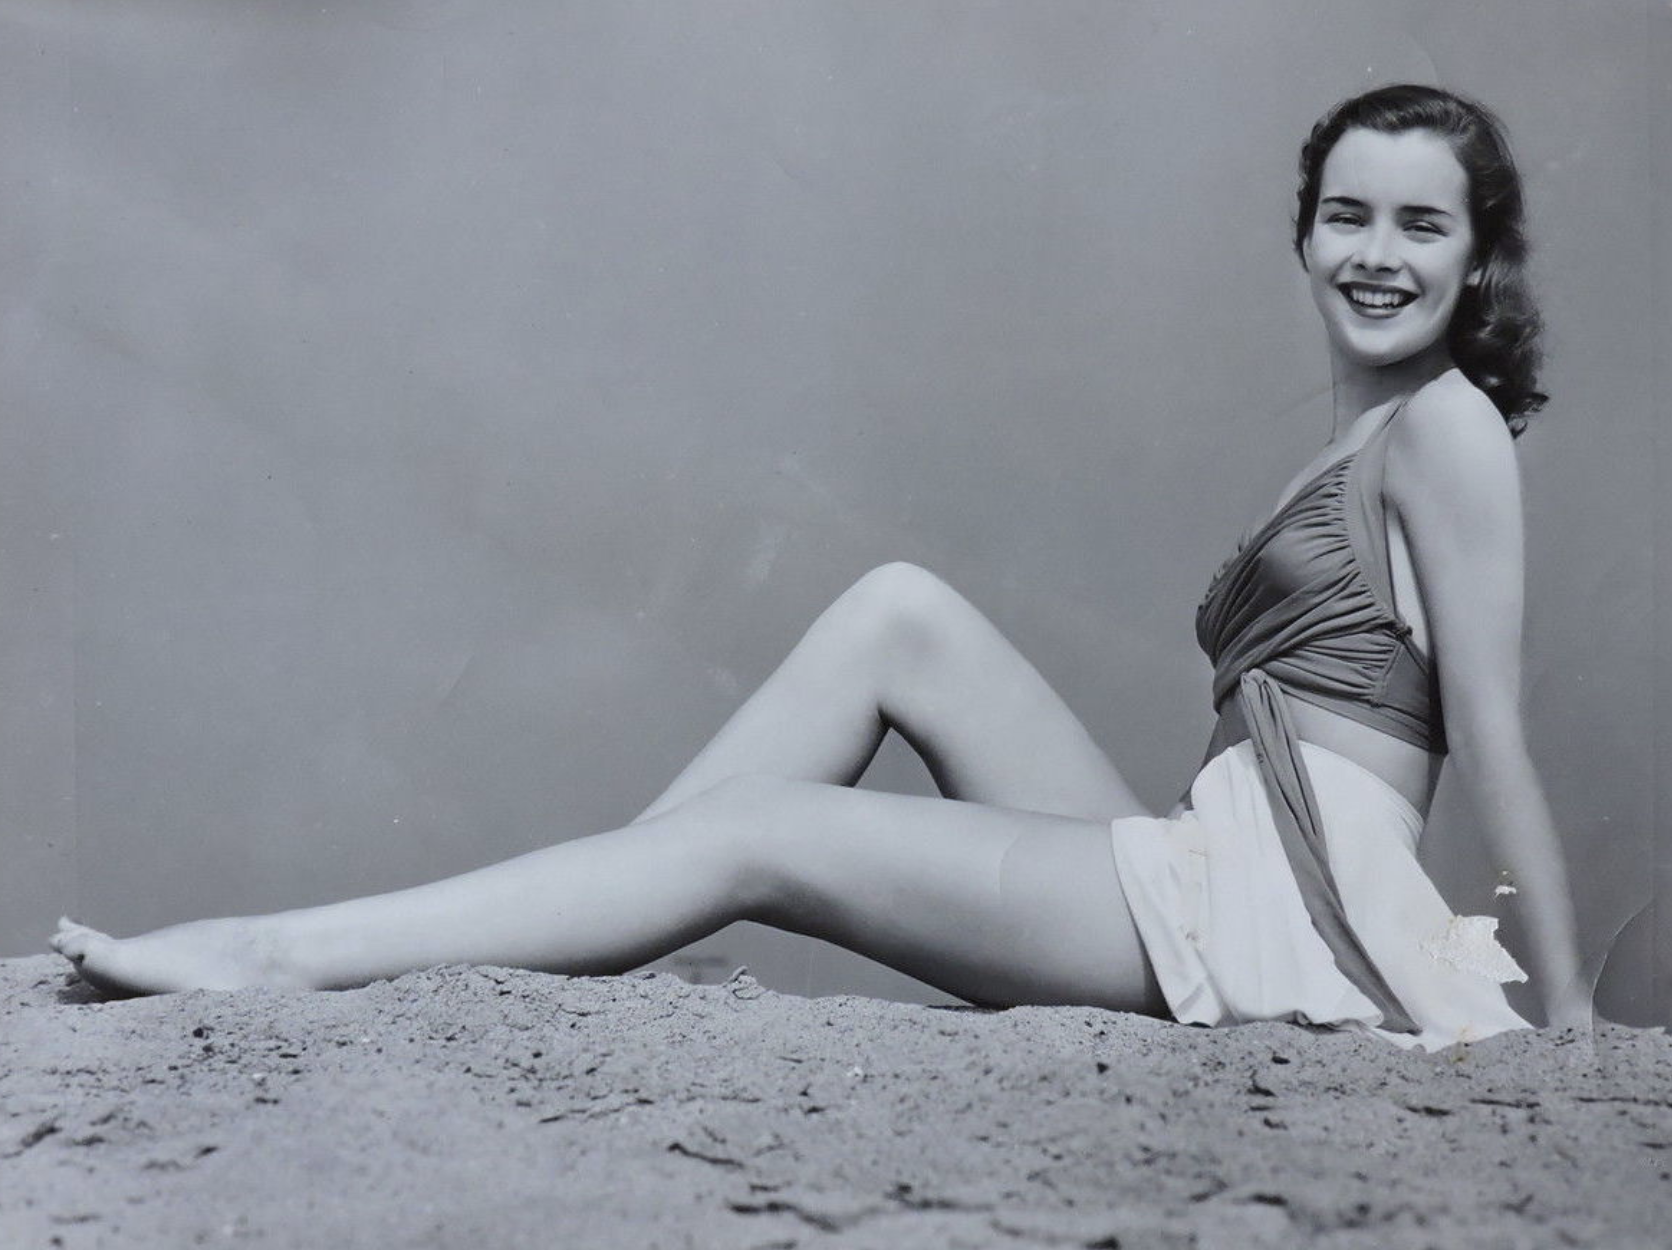 A promotional image of Susan on the beach, circa 1940s